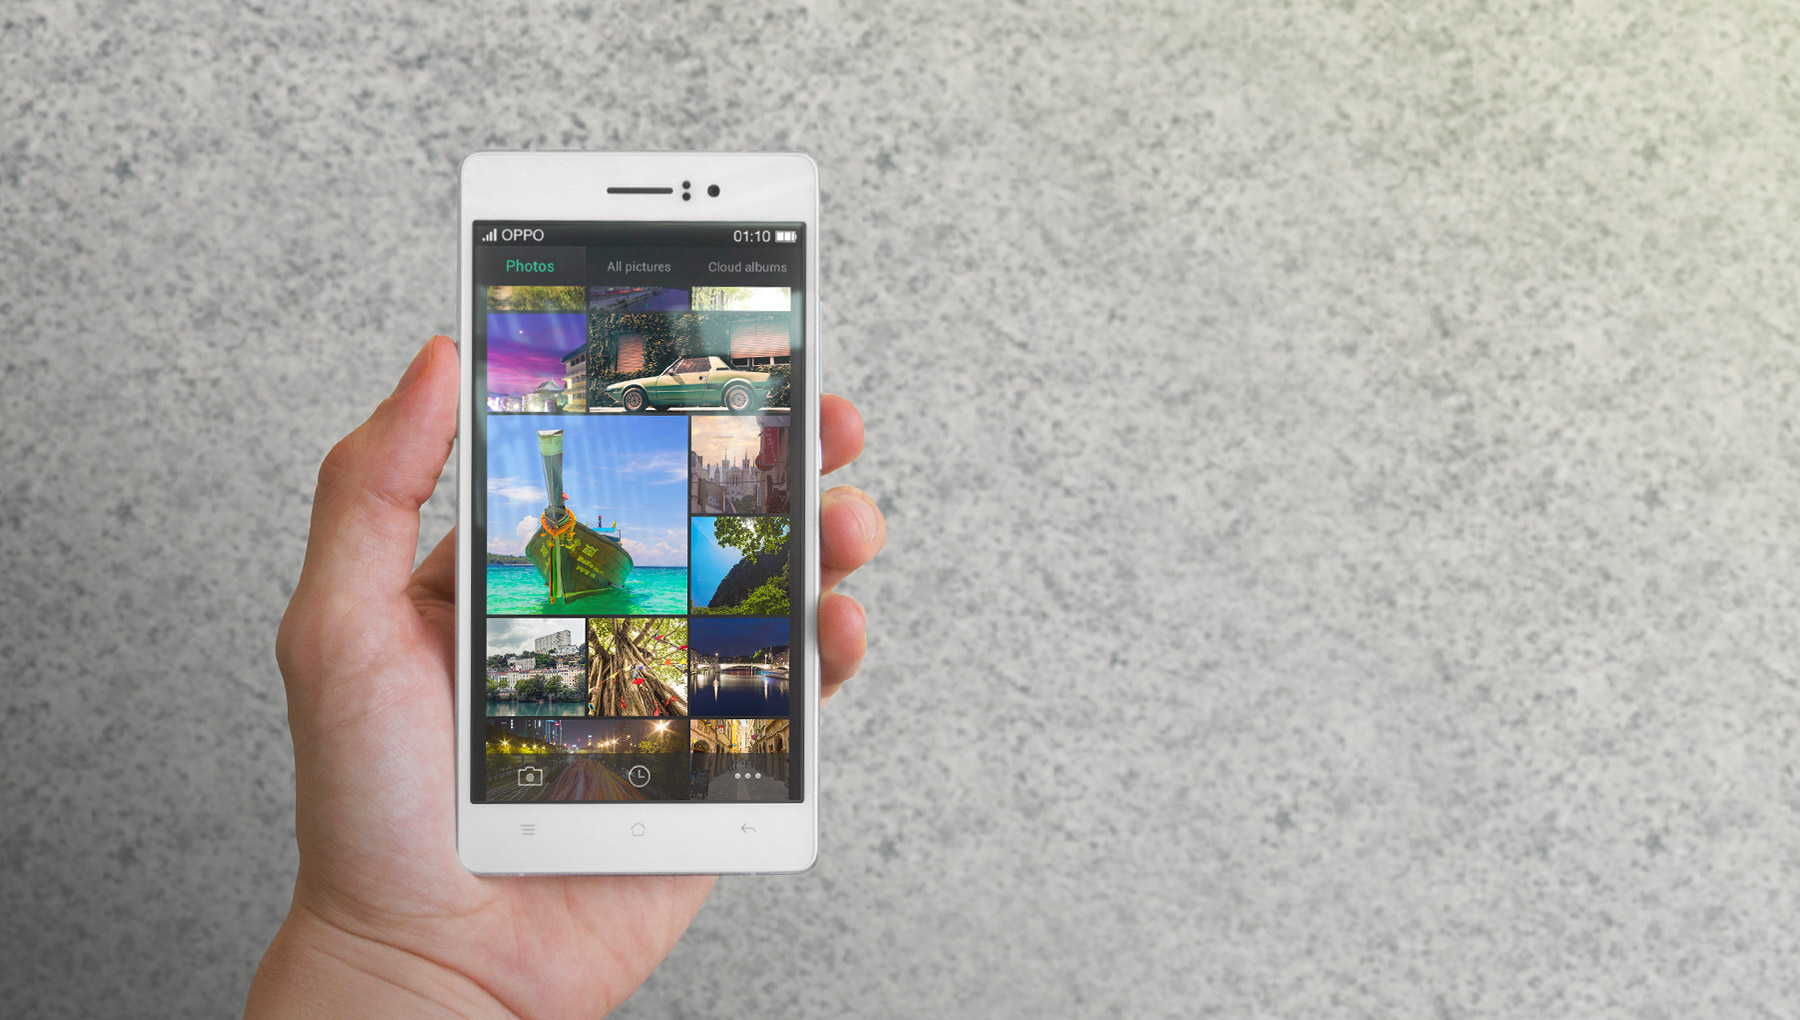 OPPO R5, the thinnest phone in the world